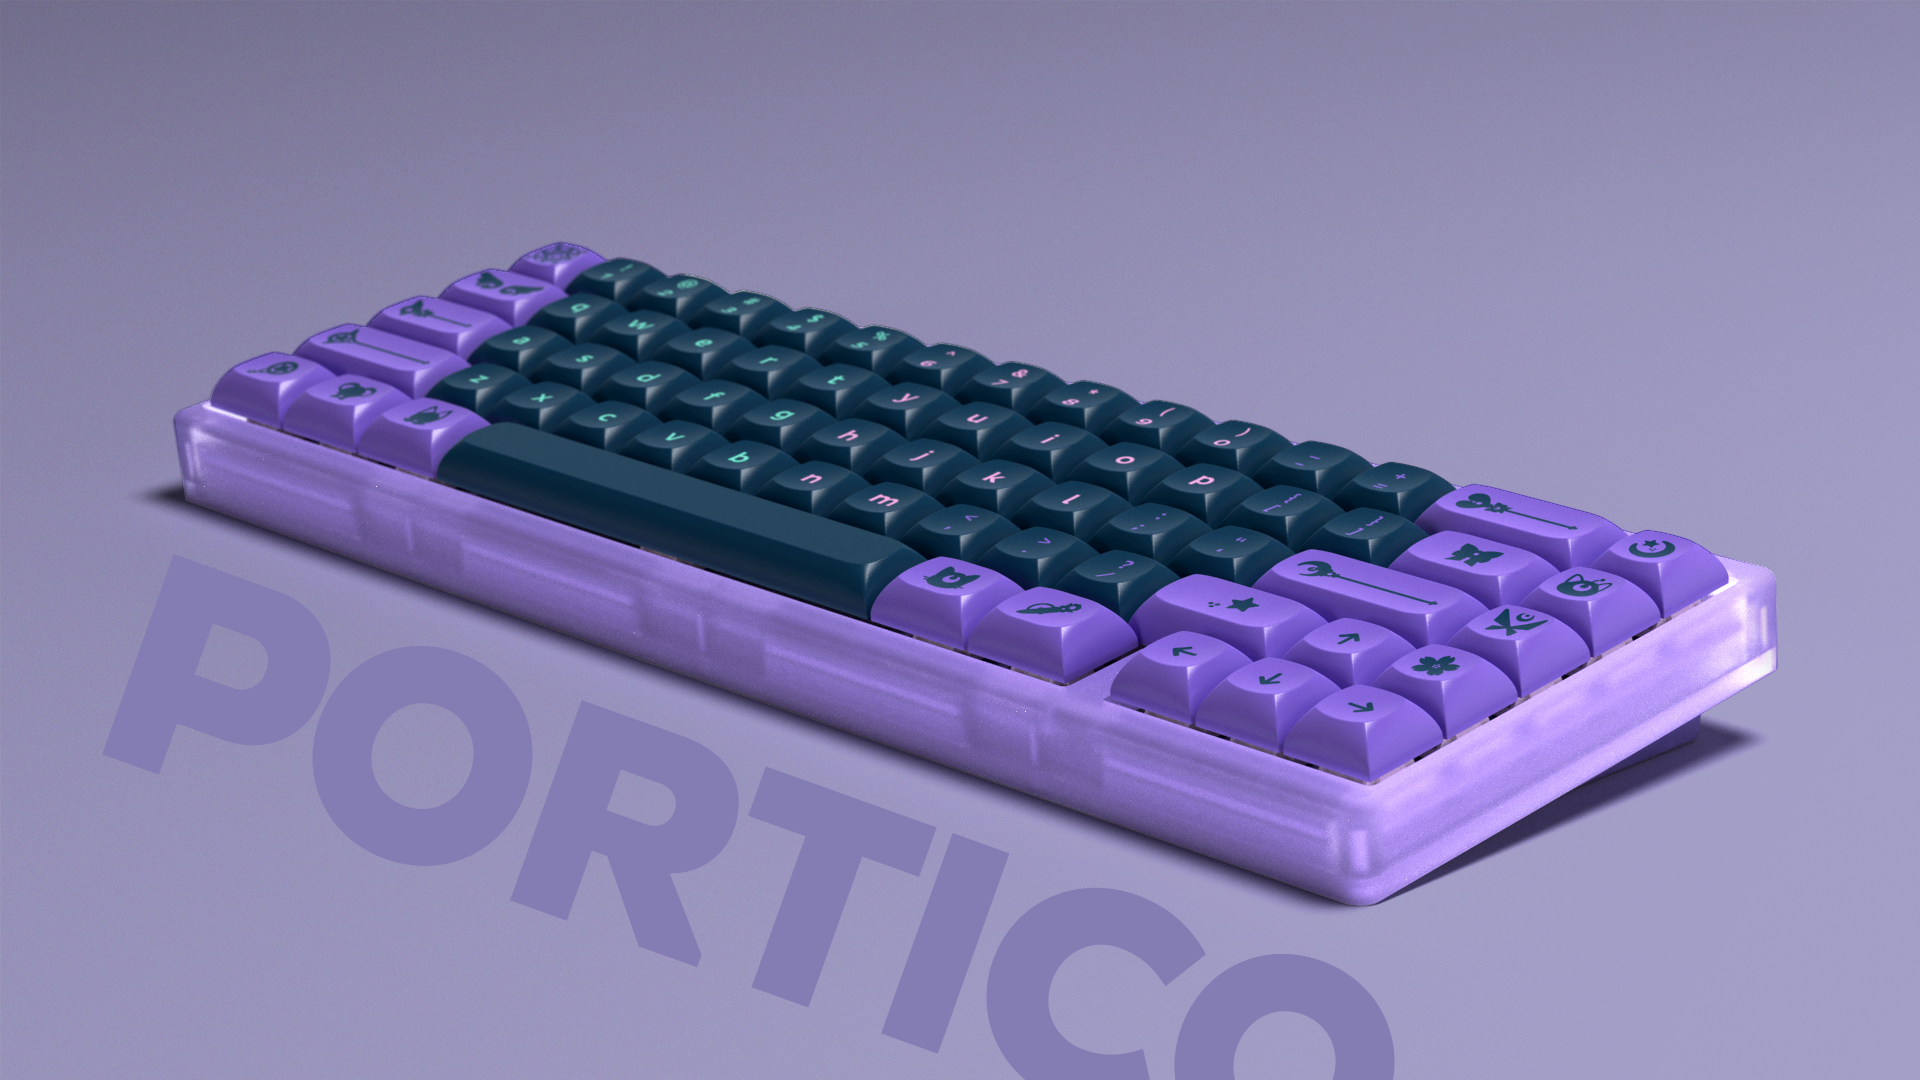 Purple Portico keyboard with Dark Magic Girl.